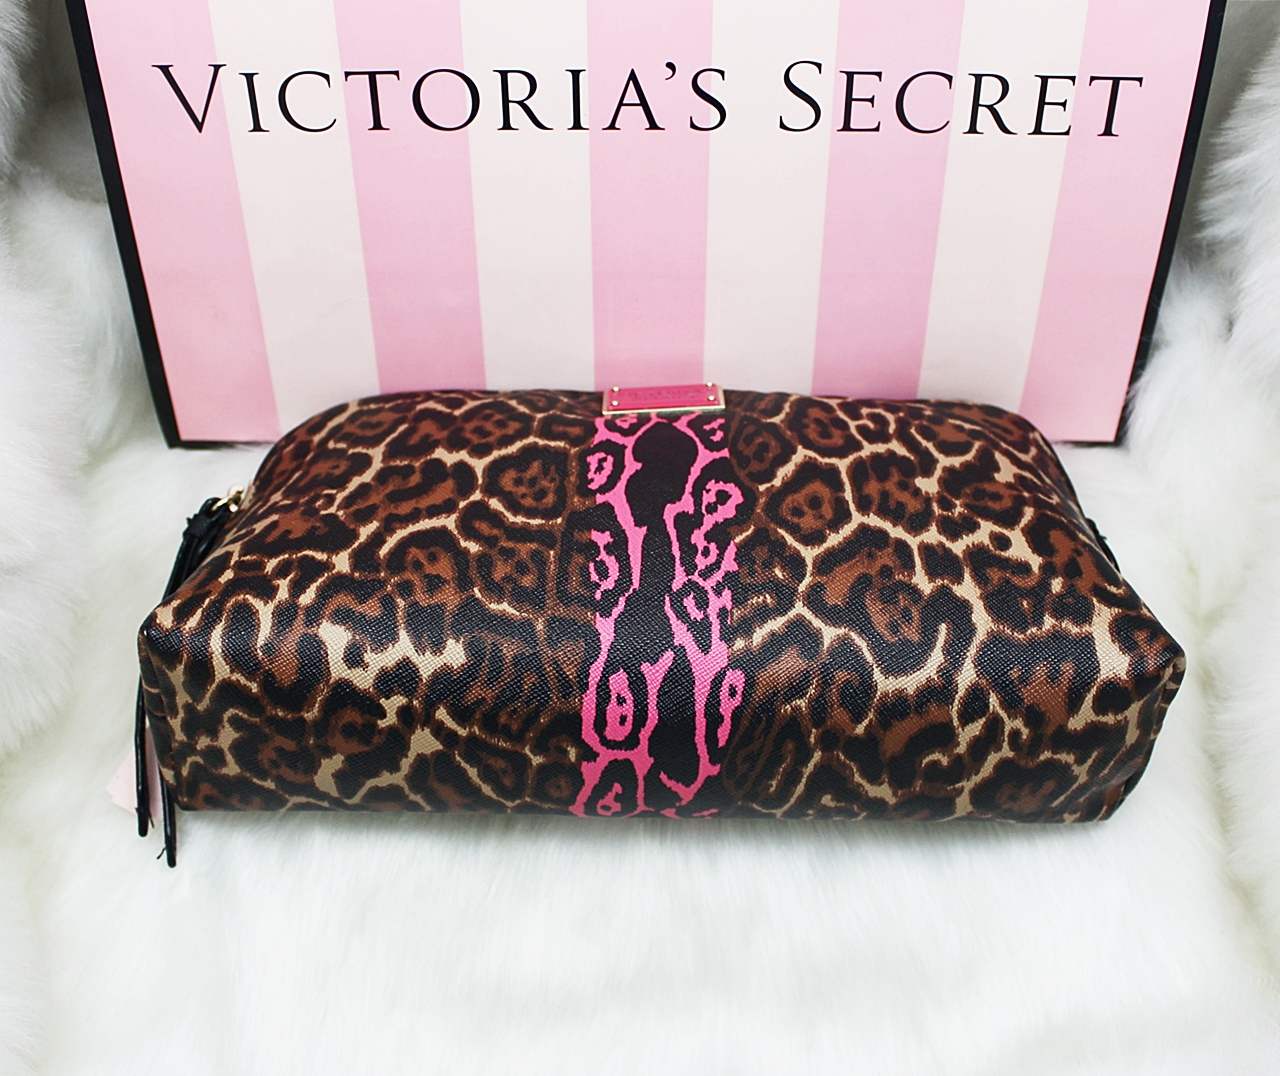 Victoria's Secret Wild Leopard Travel Makeup Cosmetic Case